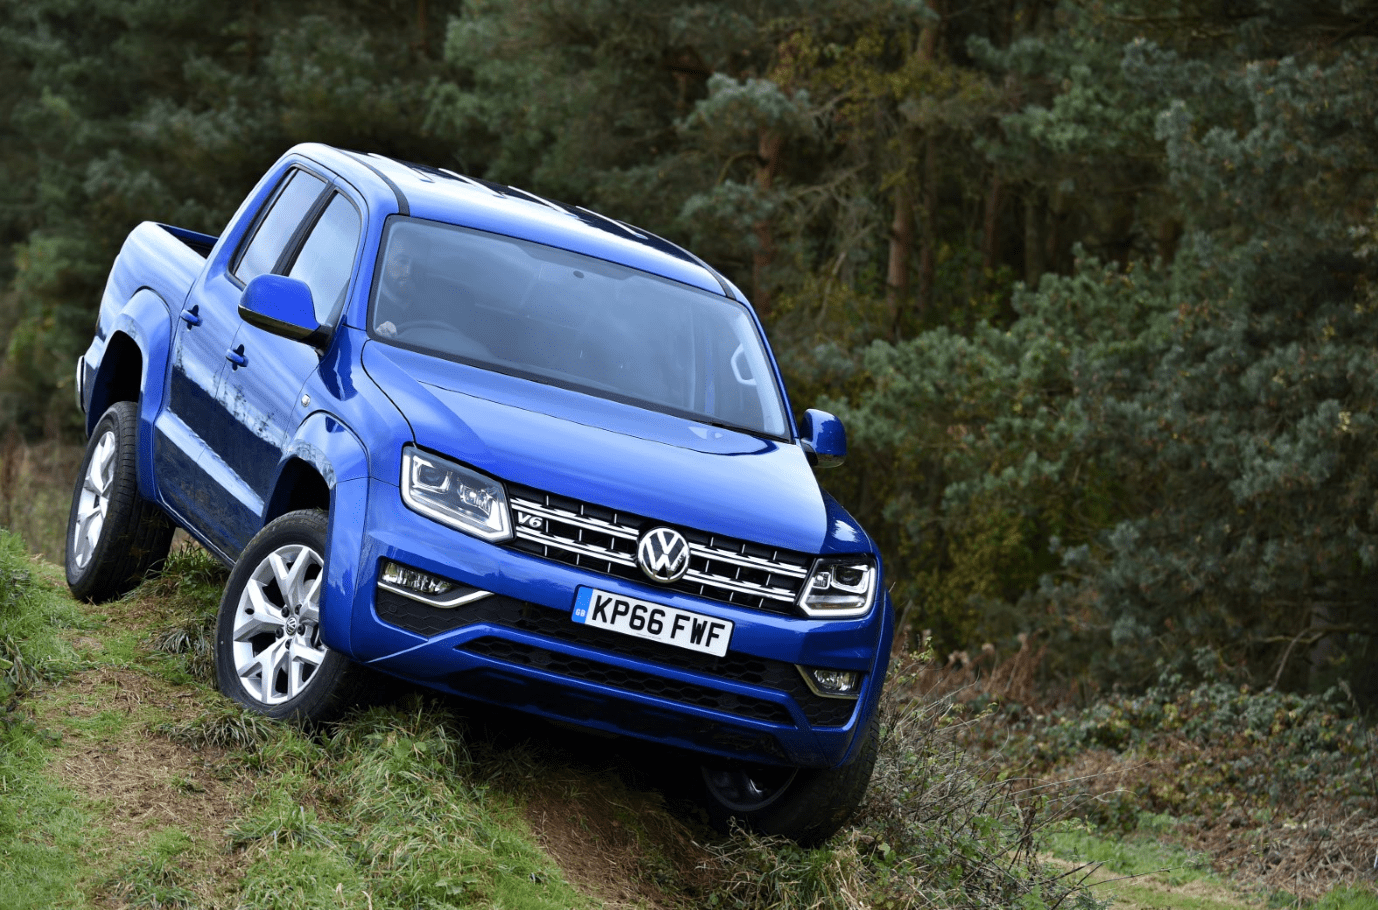 Blue Volkswagen Amarok off-road on difficult terrain